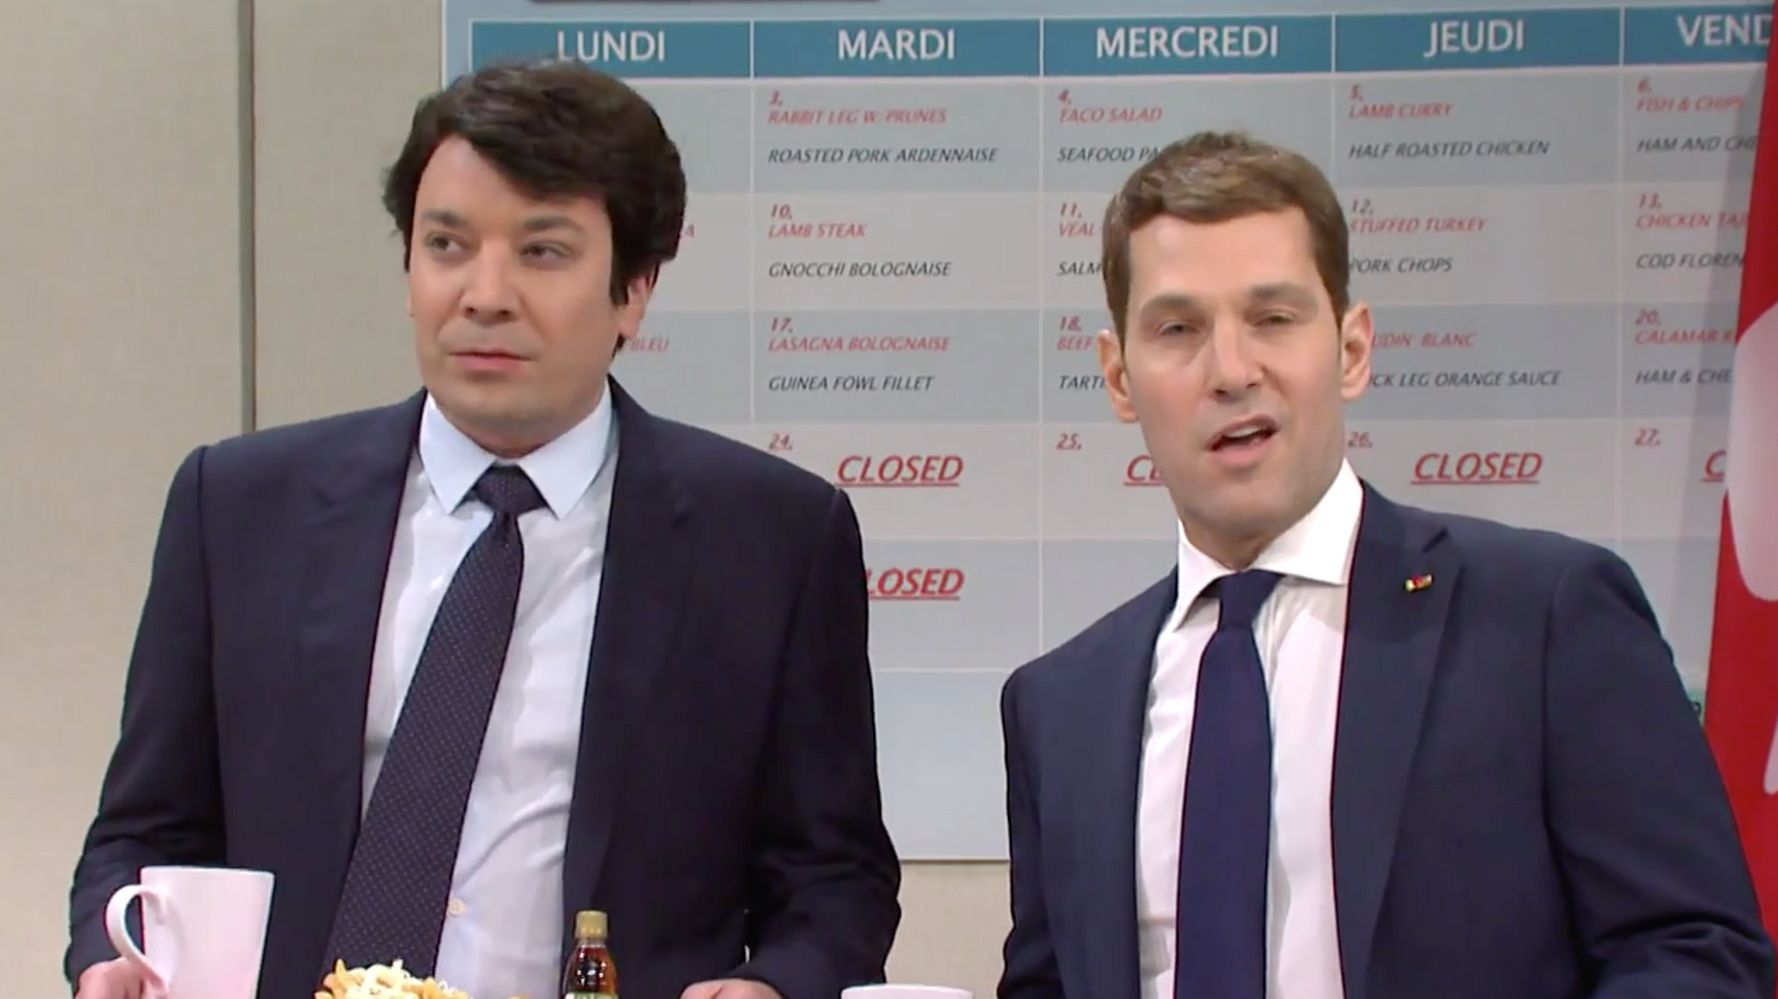 Jimmy Fallon Channels 'Mean Girls' In Playing Trudeau On 'Saturday Night Live'